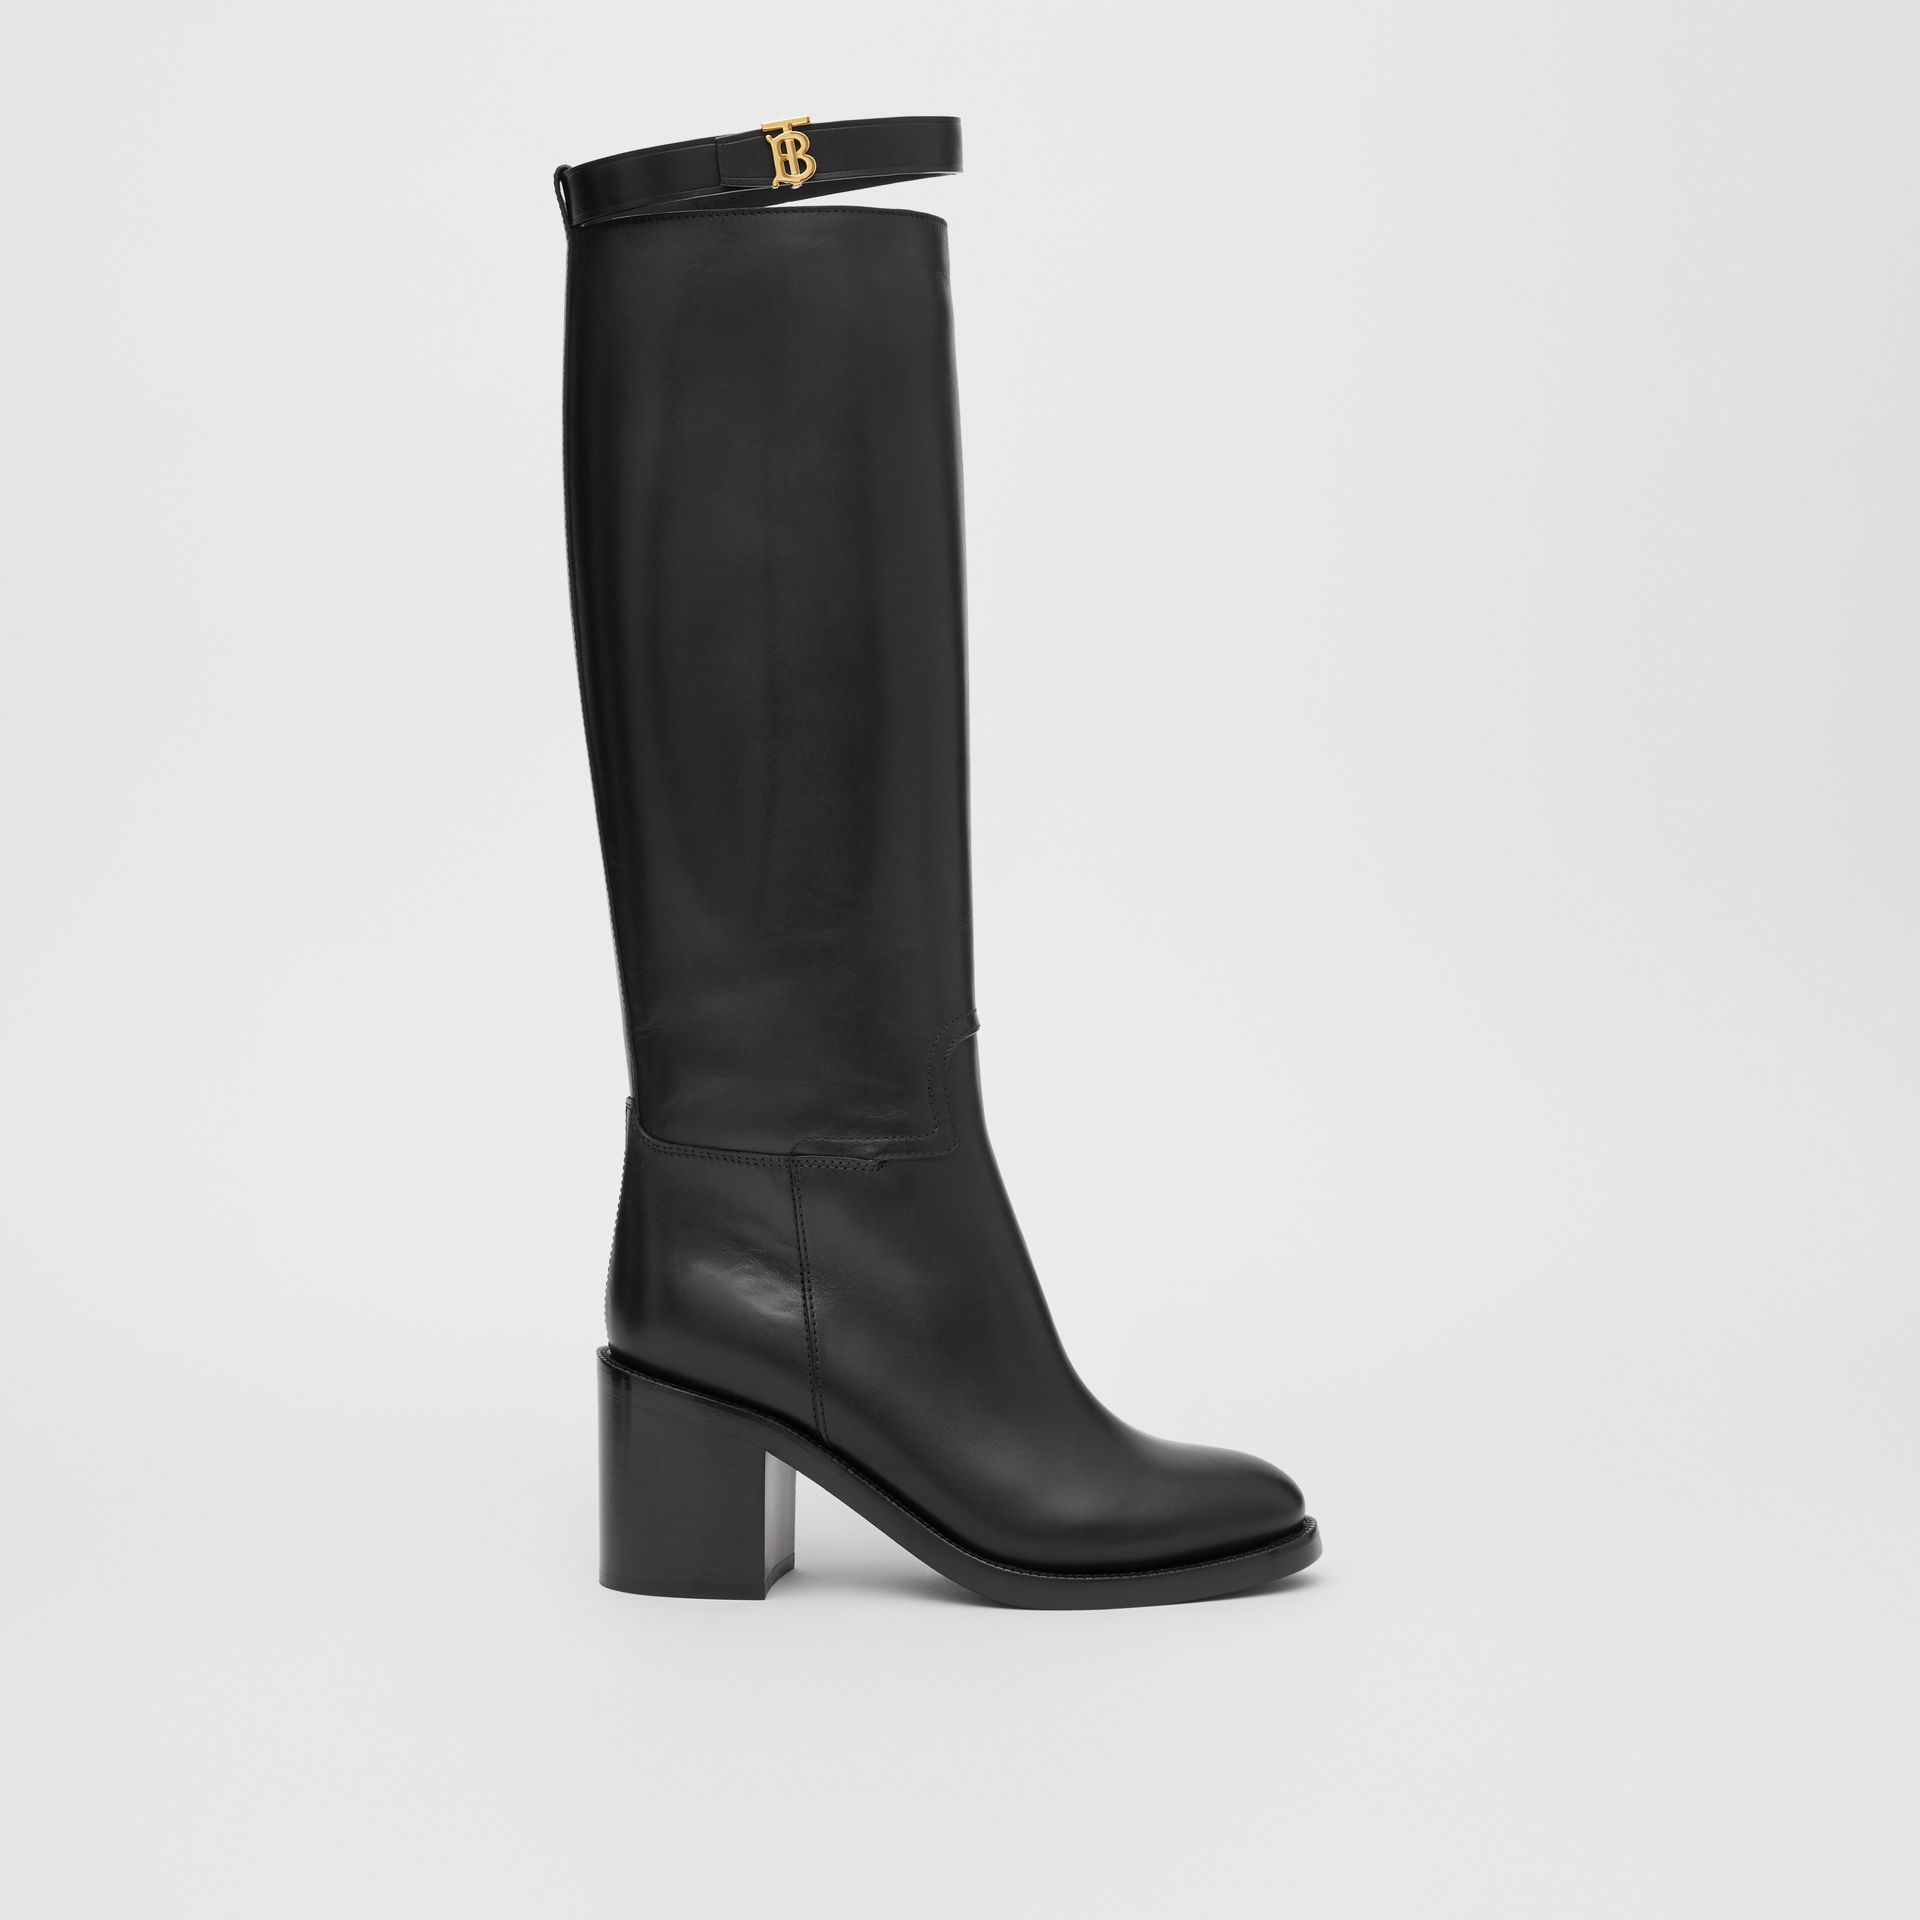 Monogram Motif Leather Knee-high Boots in Black - Women | Burberry United Kingdom - gallery image 4